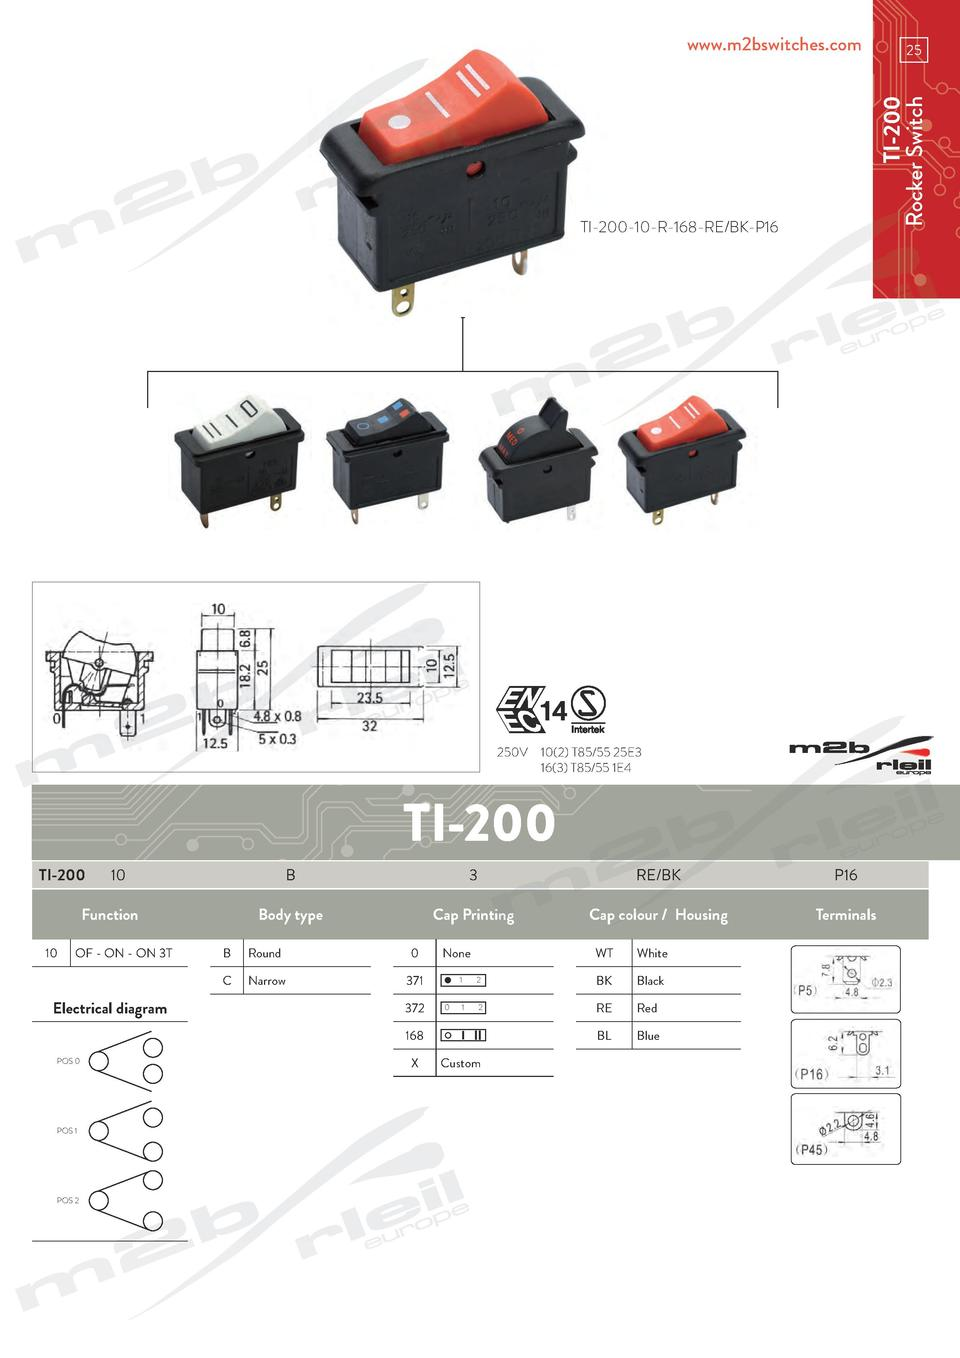 www.m2bswitches.com  TI-200 Rocker Switch  25  TI-200-10-R-168-RE BK-P16  250V   10 2  T85 55 25E3   16 3  T85 55 1E4  TI-...